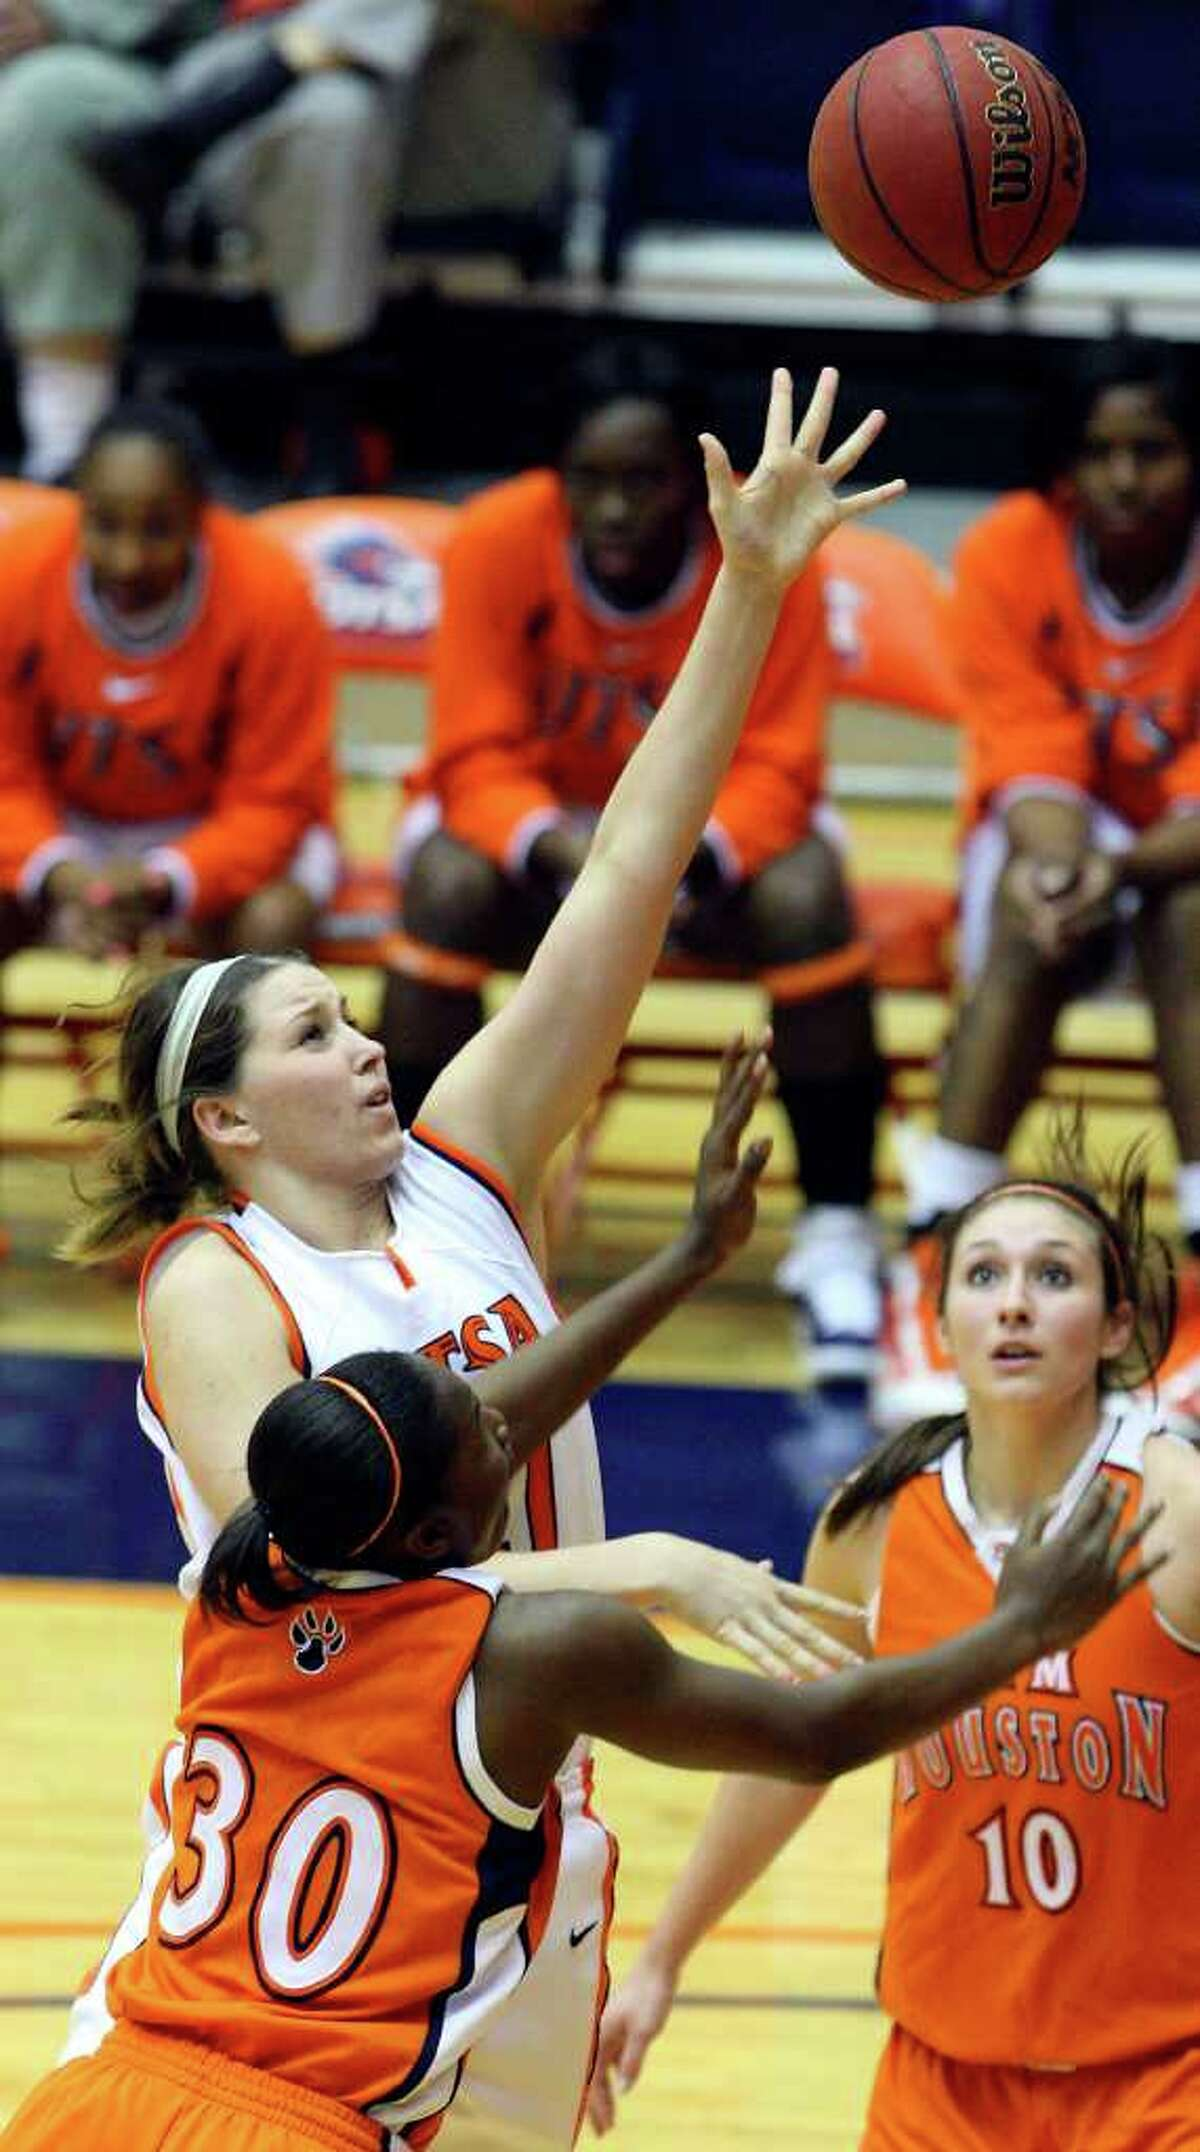 FOR SPORTS - UTSA's Kelsey Ansley shoots between Sam Houston State's Sequeena Thomas (left) and Sam Houston State's Britni Martin during second half action Saturday Jan. 29, 2011 at the Convocation Center. UTSA won (PHOTO BY EDWARD A. ORNELAS/eaornelas@express-news.net)